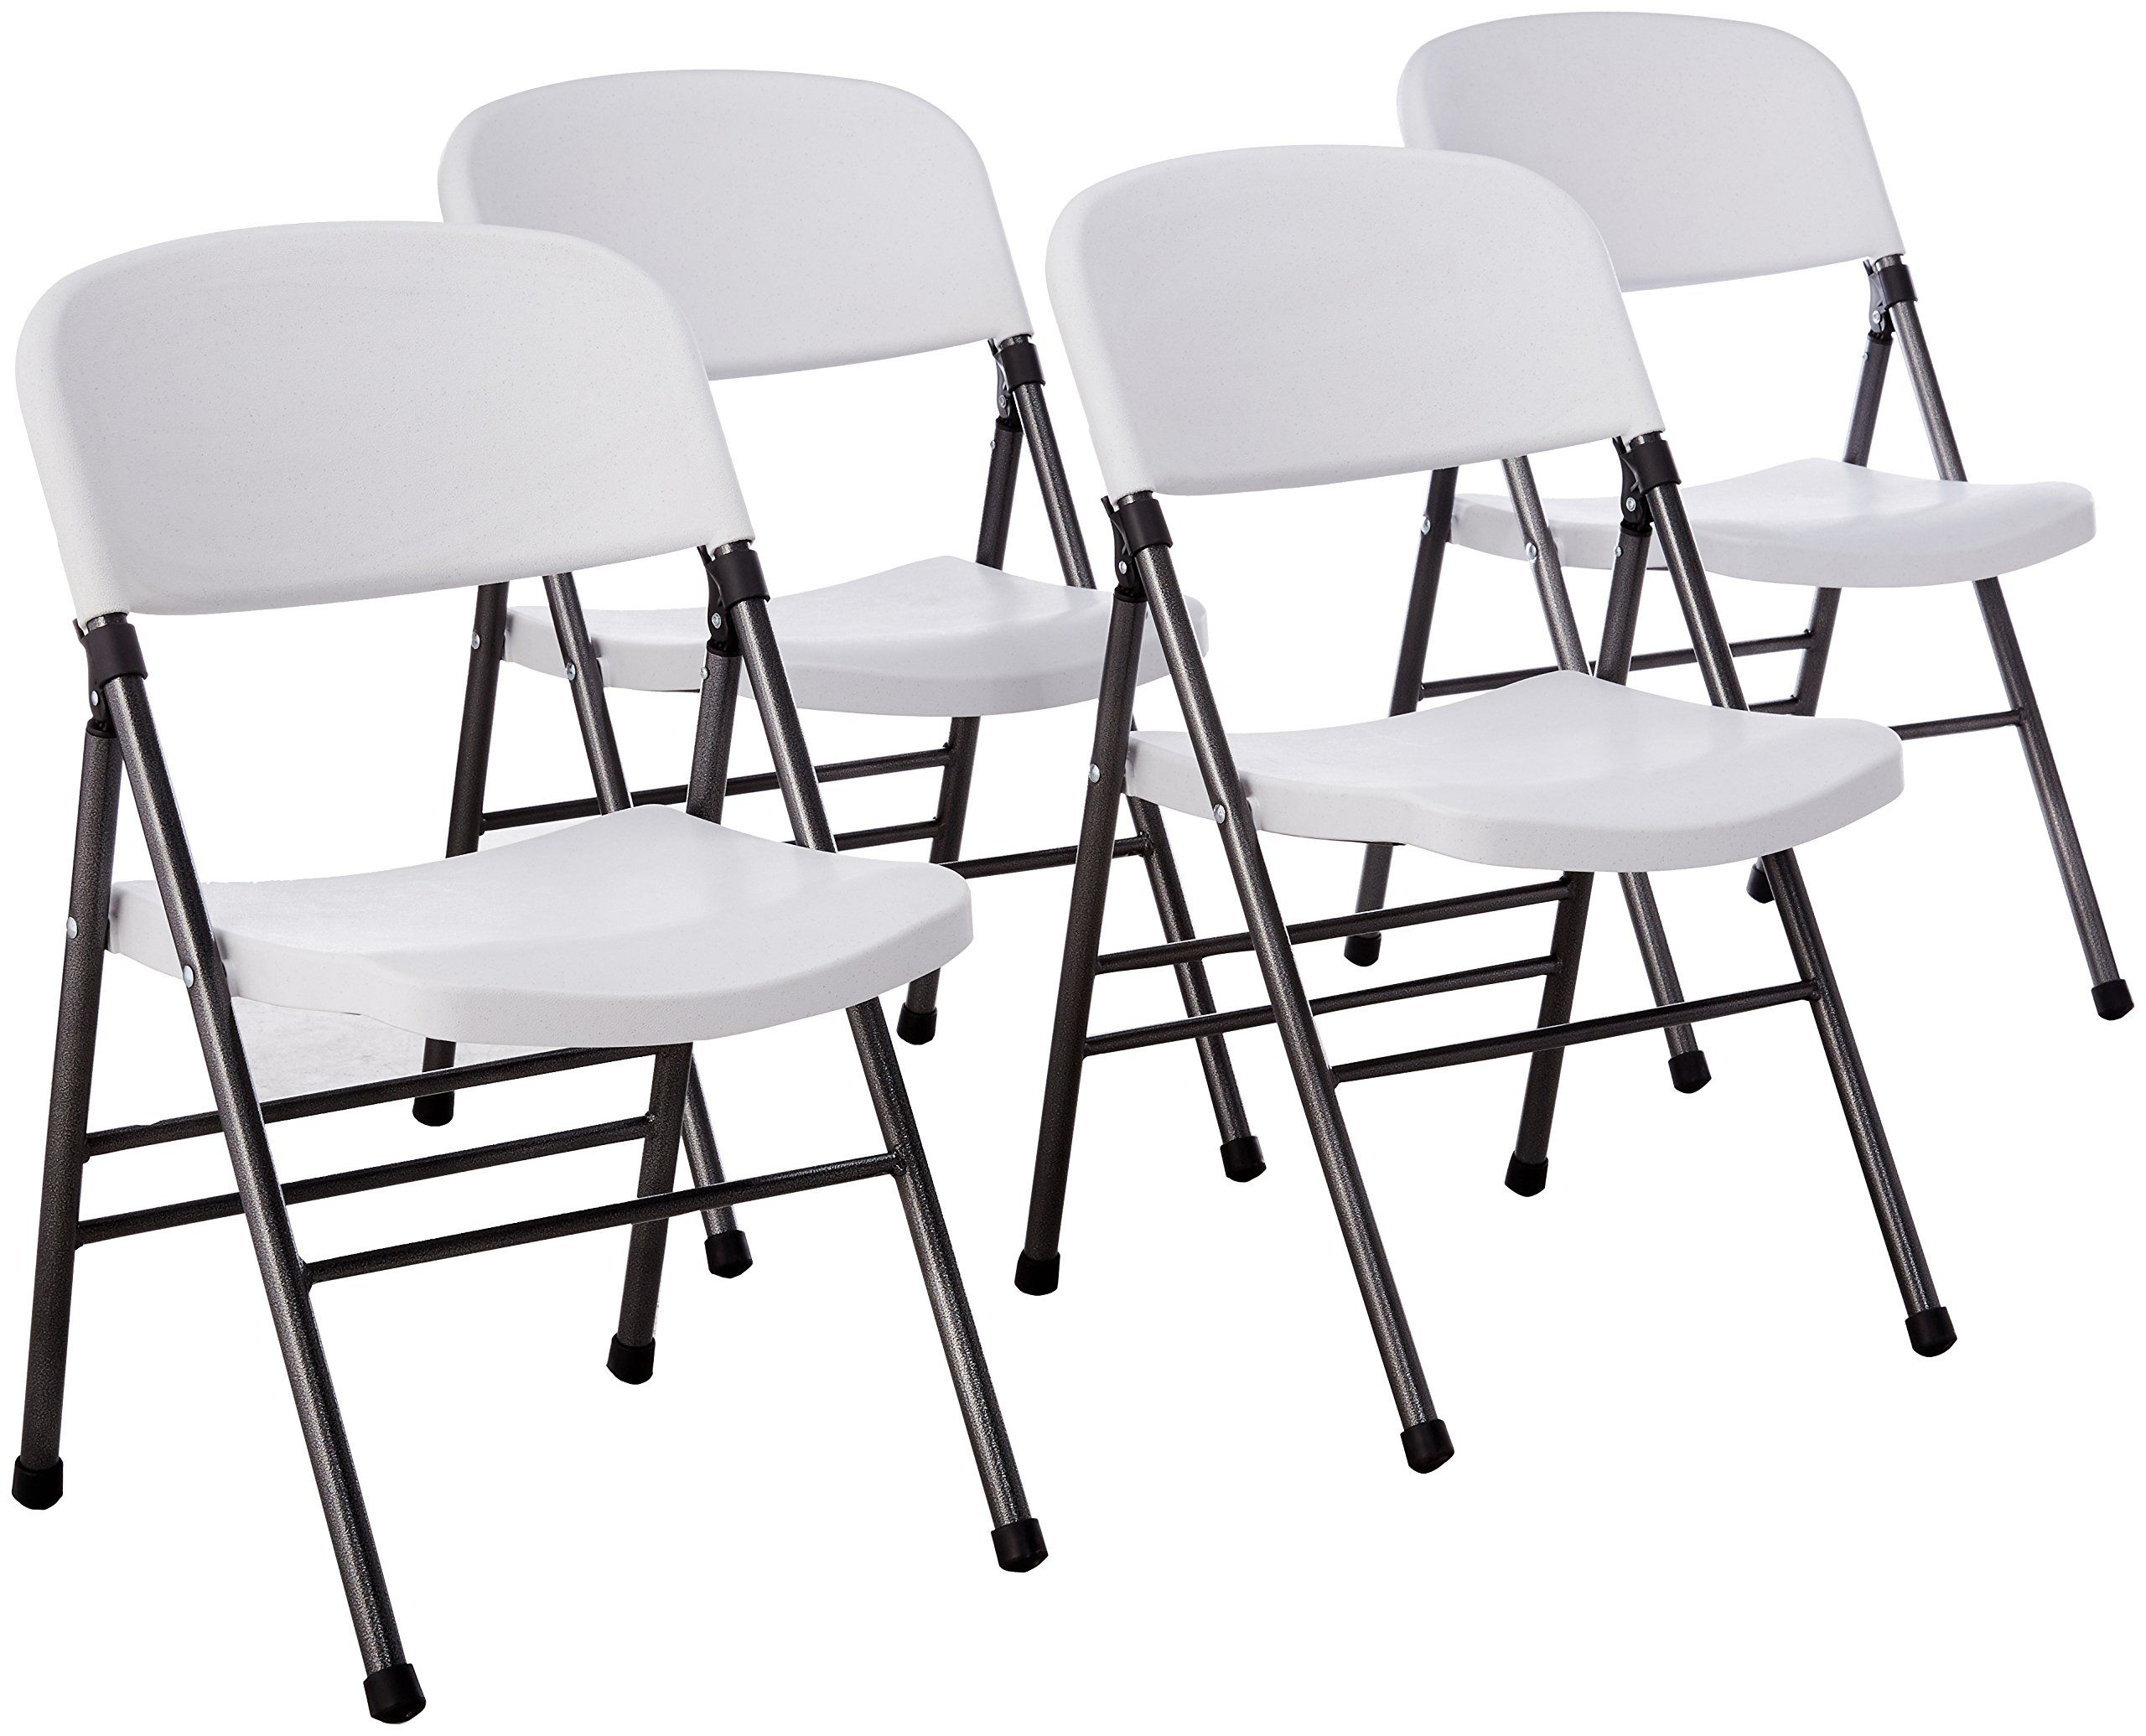 Cosco Resin 4 Pack Folding Chair With Molded Seat And Back White Folding Chair Best Folding Chairs Padded Folding Chairs